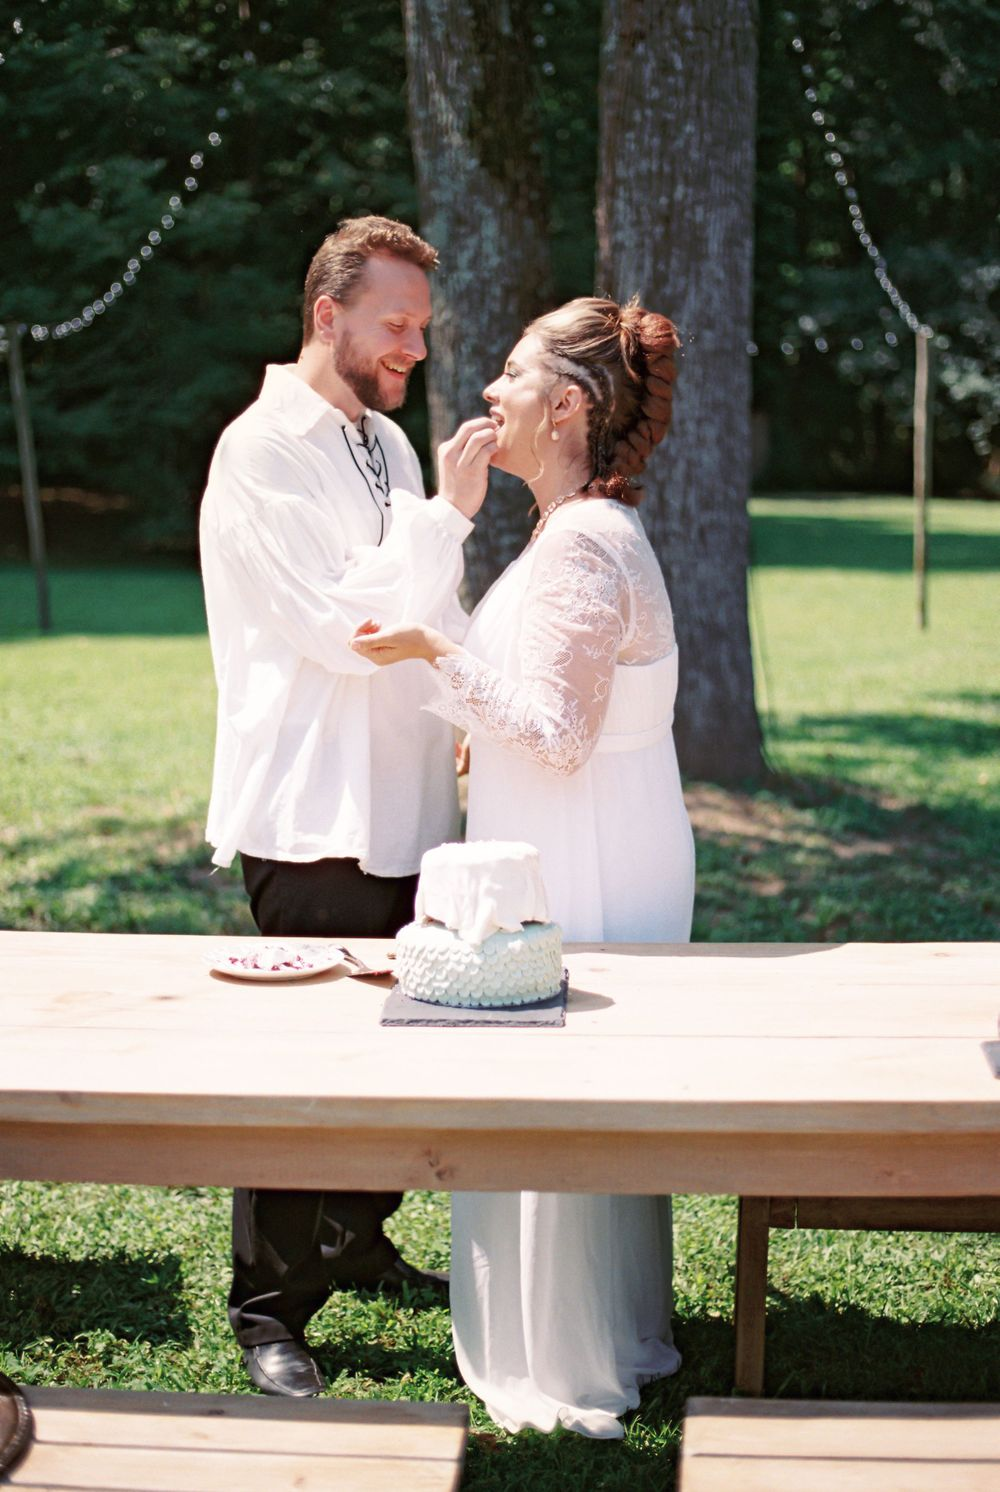 Couple feeding each other cake